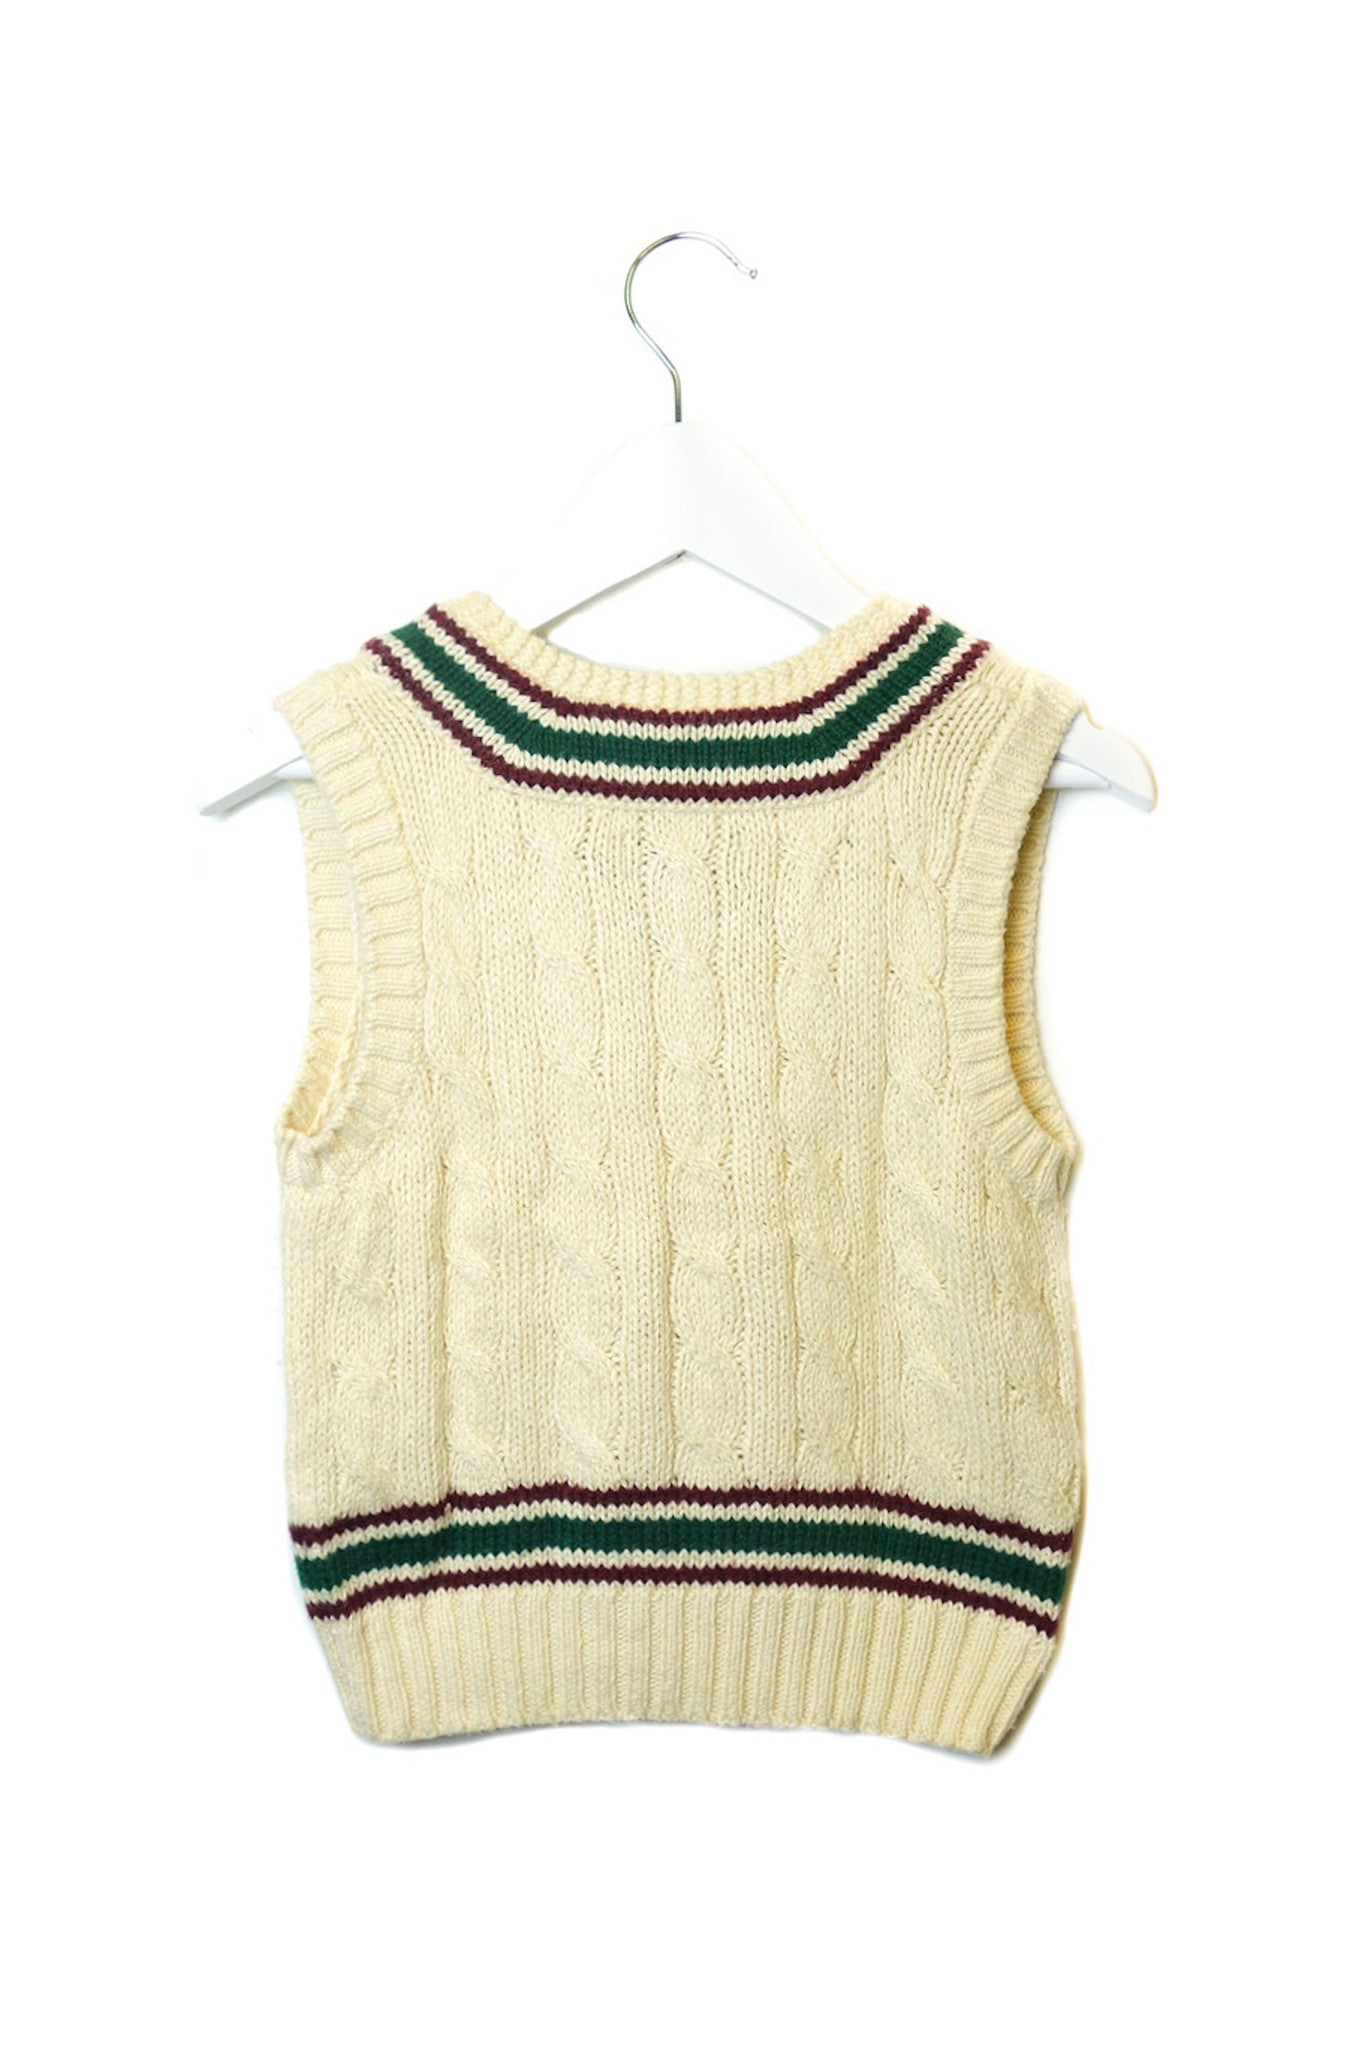 10001767 Polo Ralph Lauren Kids~Sweater 3T at Retykle